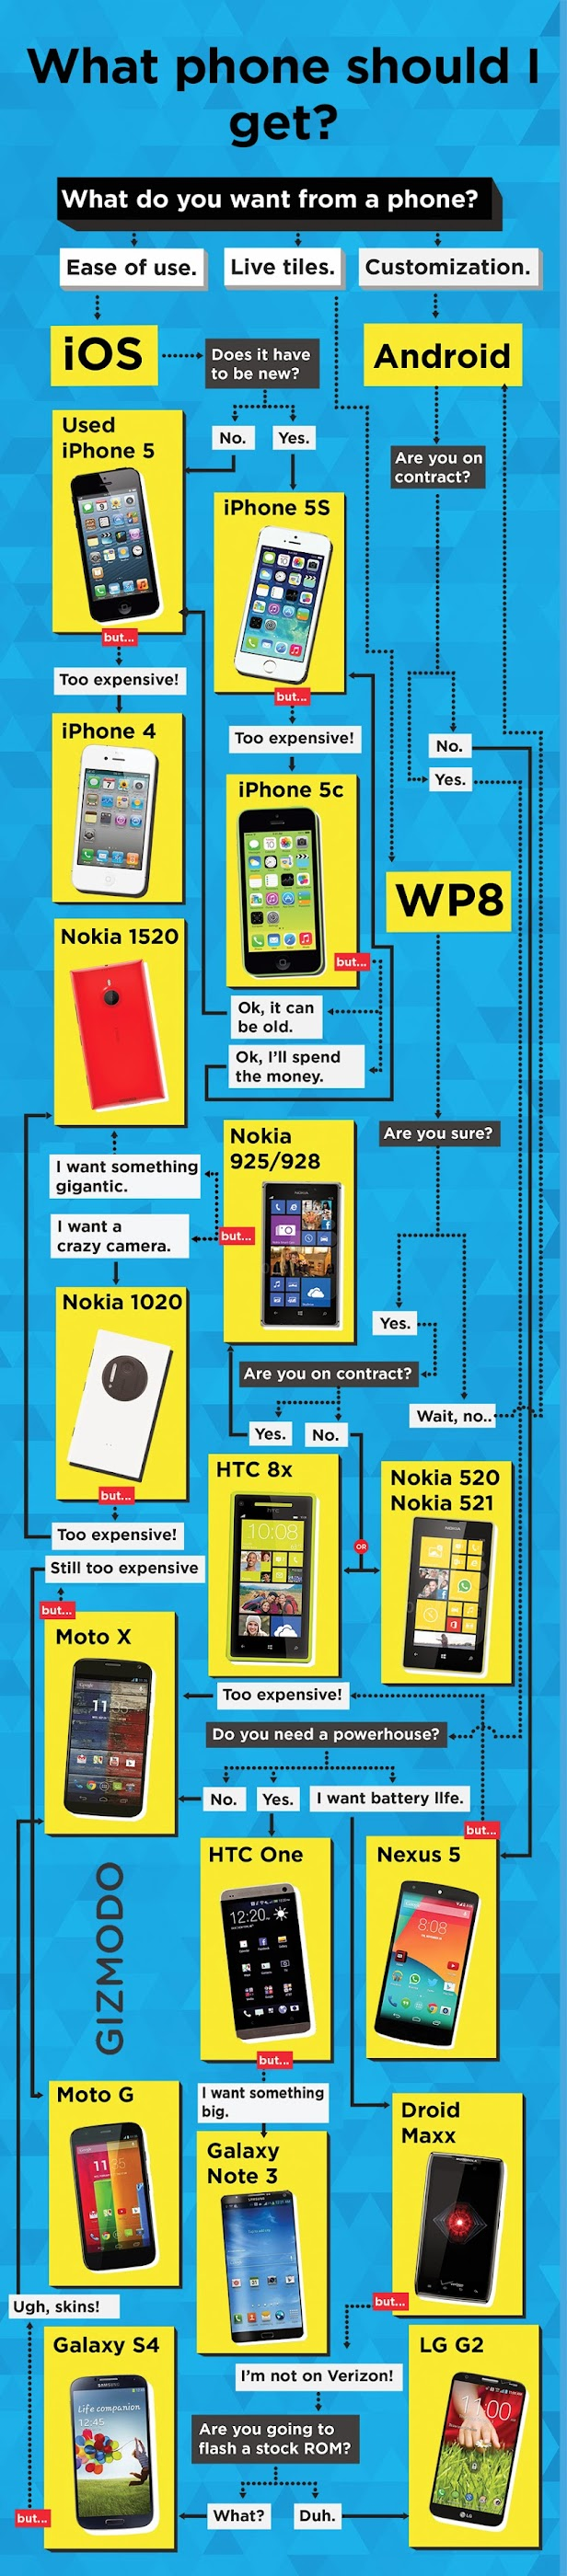 What Smartphone Should I Get? Infographic